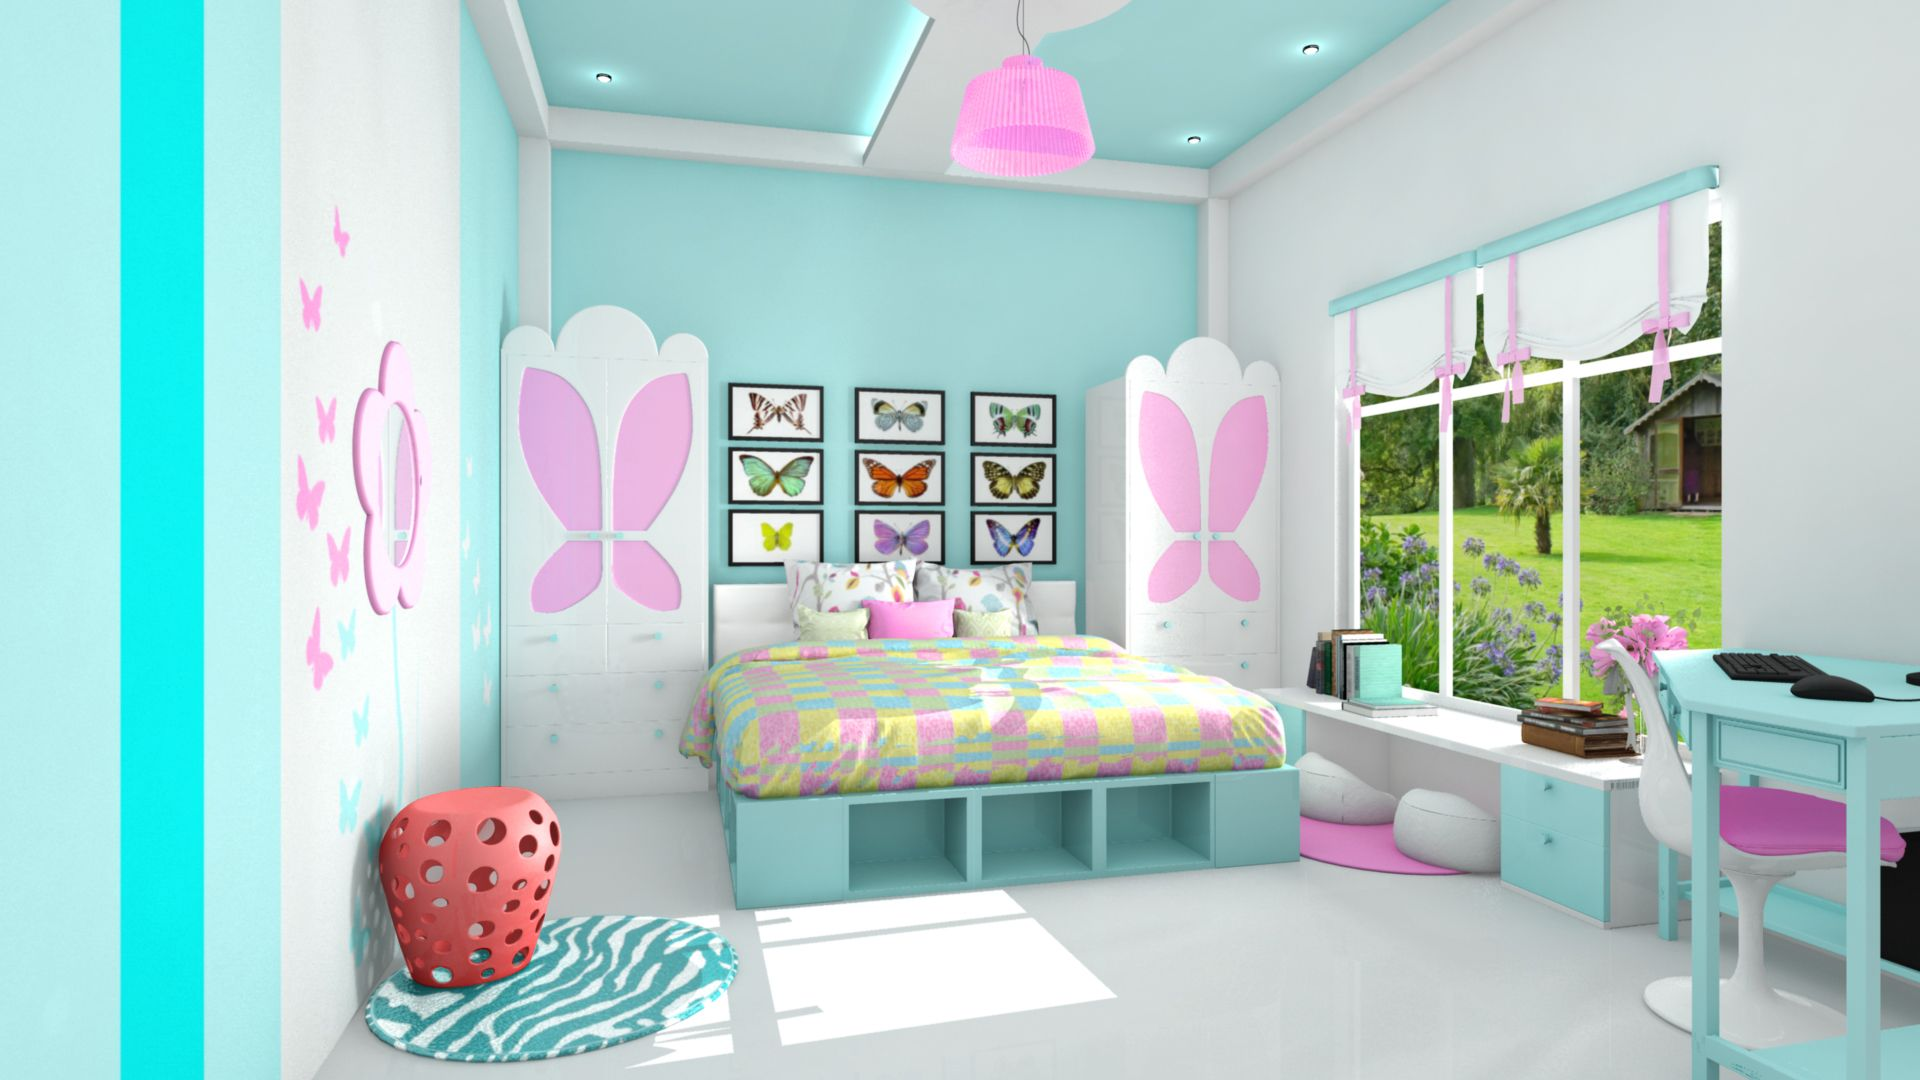 Ten yirs olde bed rooms design young girl bedroom for Room 9 design